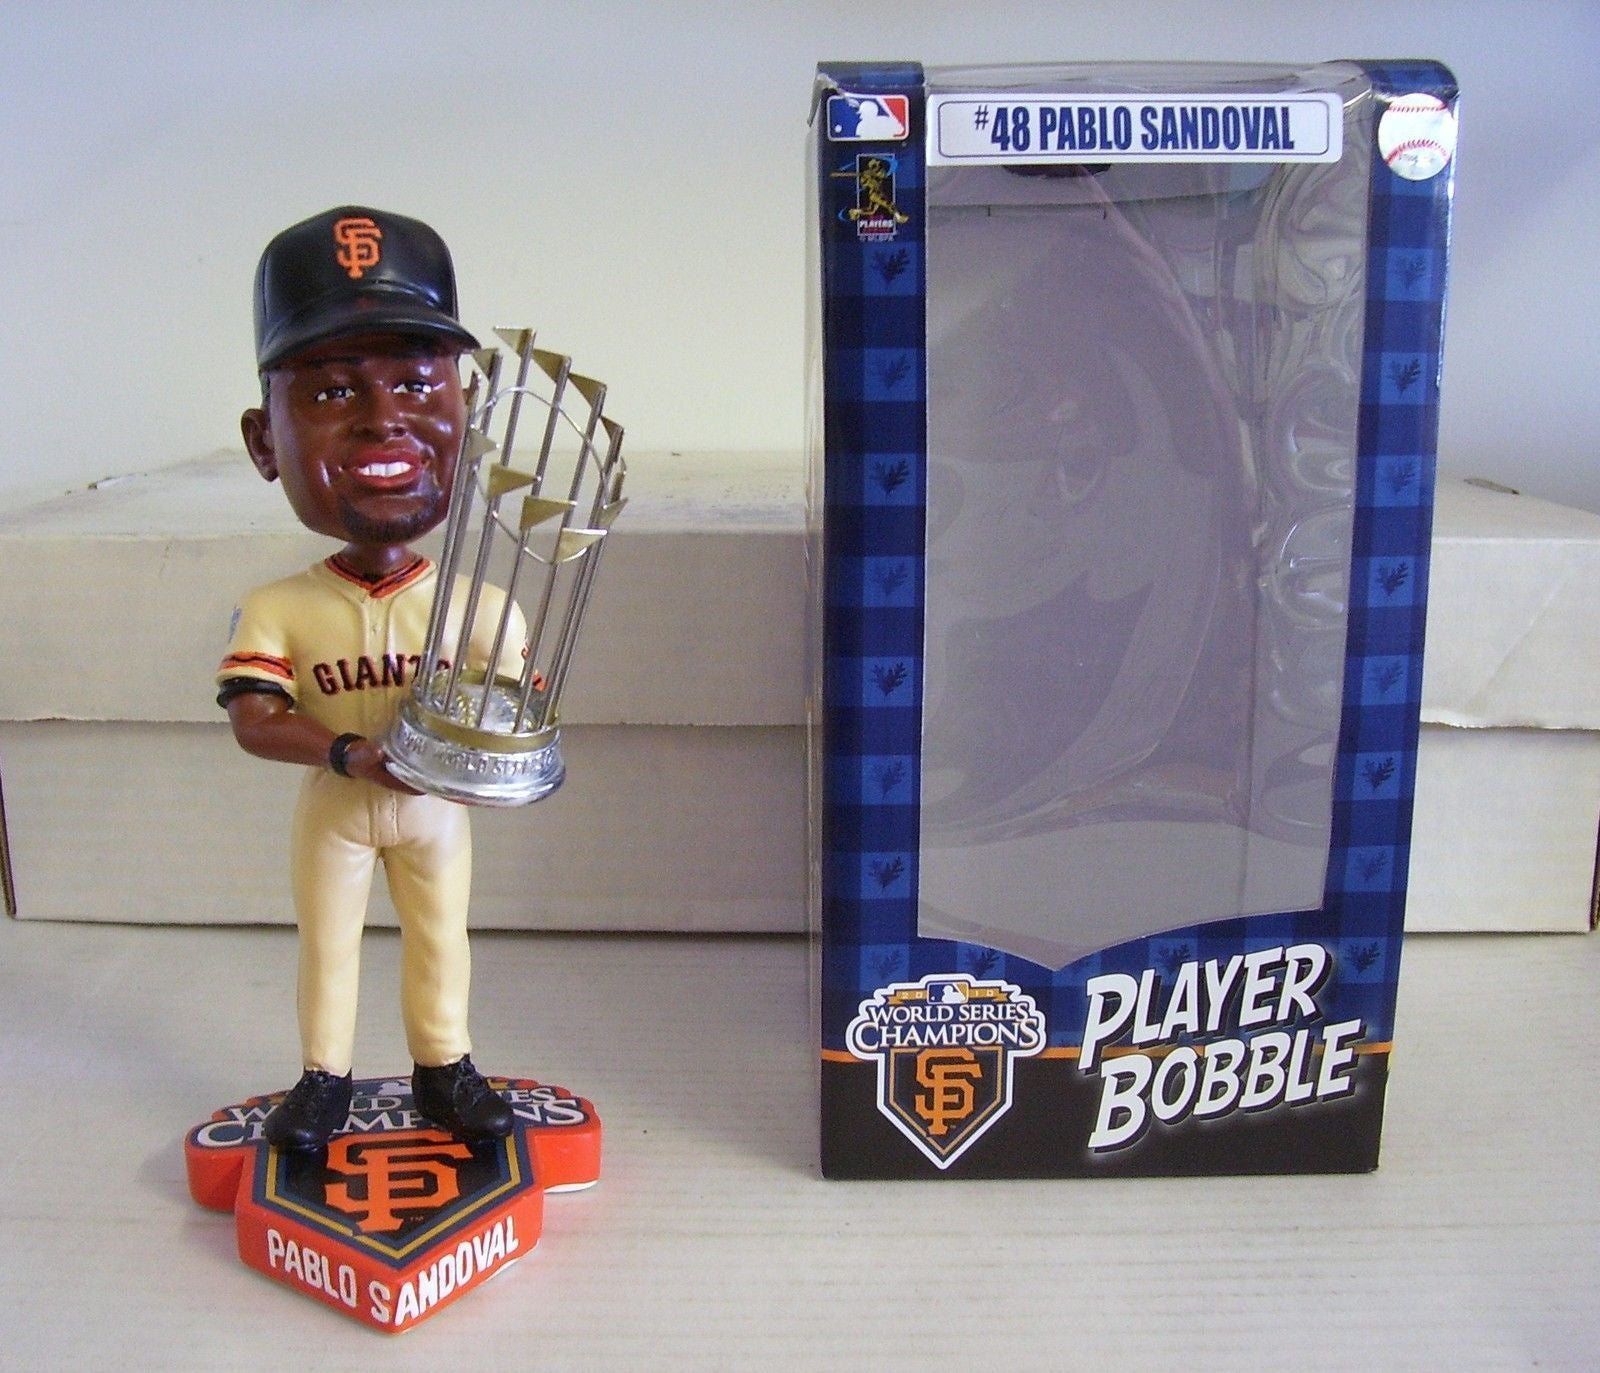 Pablo Sandoval SF Giants 2010 World Series Champ San Francisco Giants Bobblehead